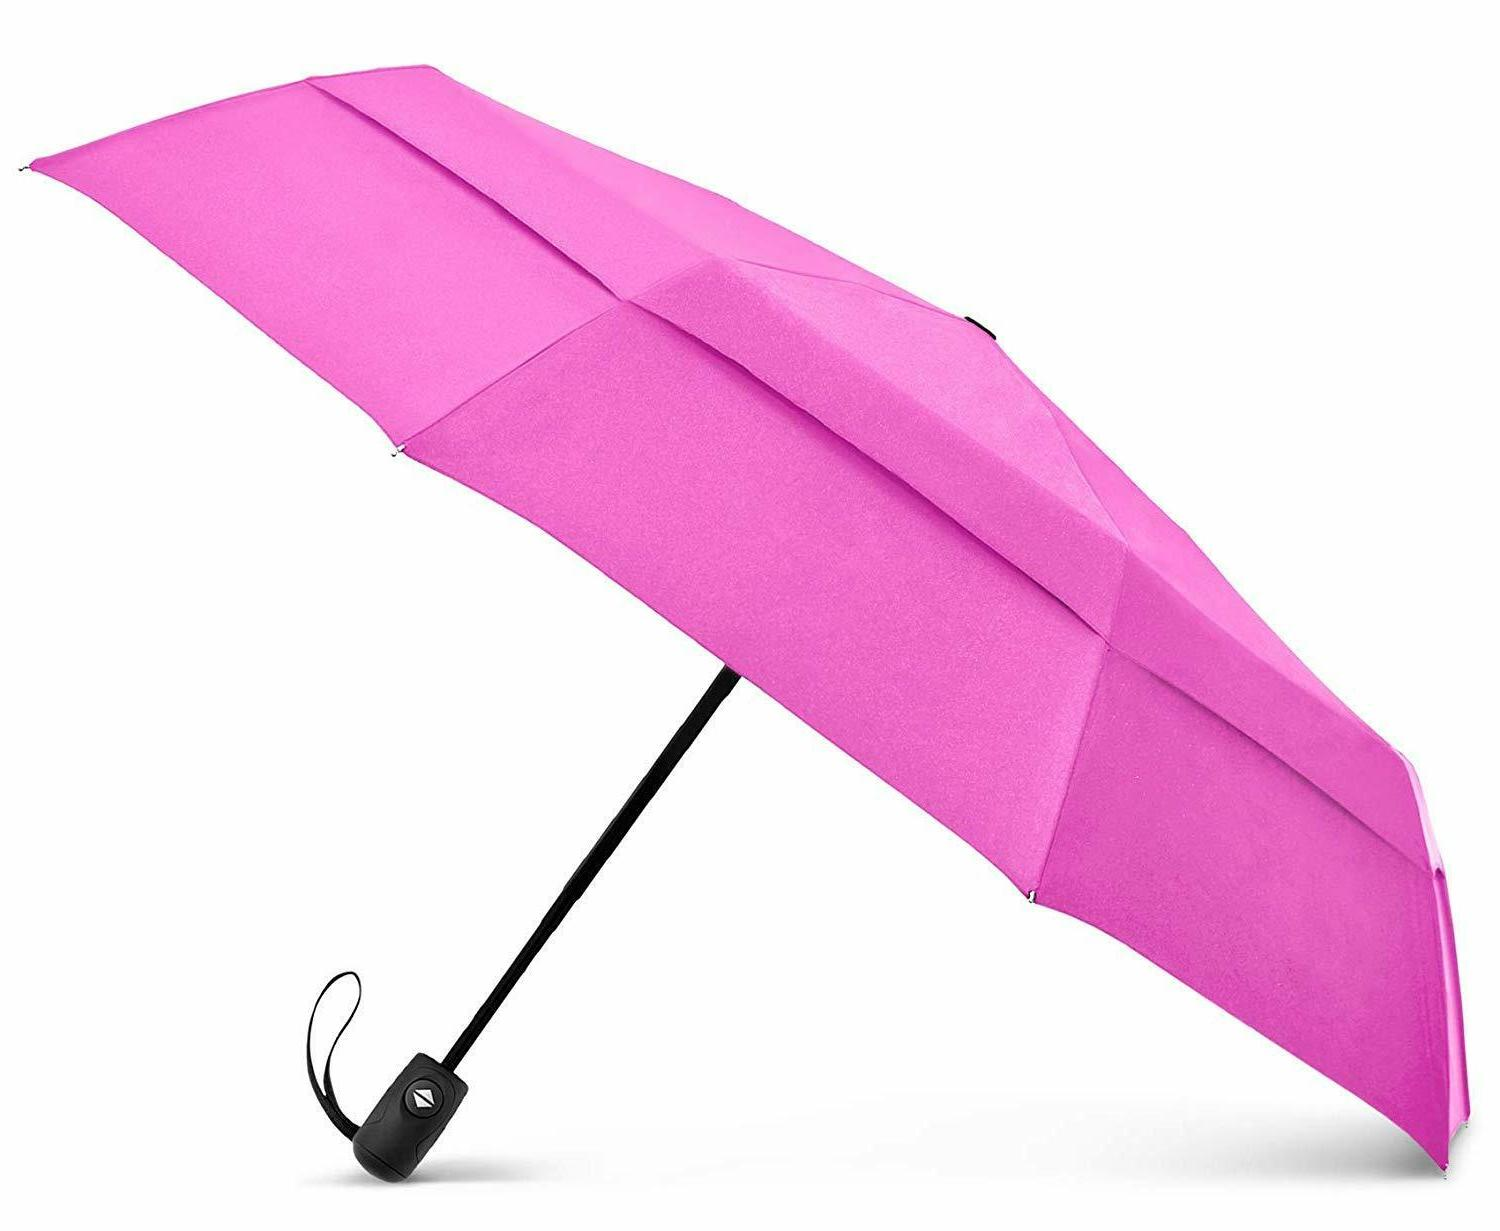 EEZ-Y Compact Travel Umbrella w/Windproof Double Canopy Auto